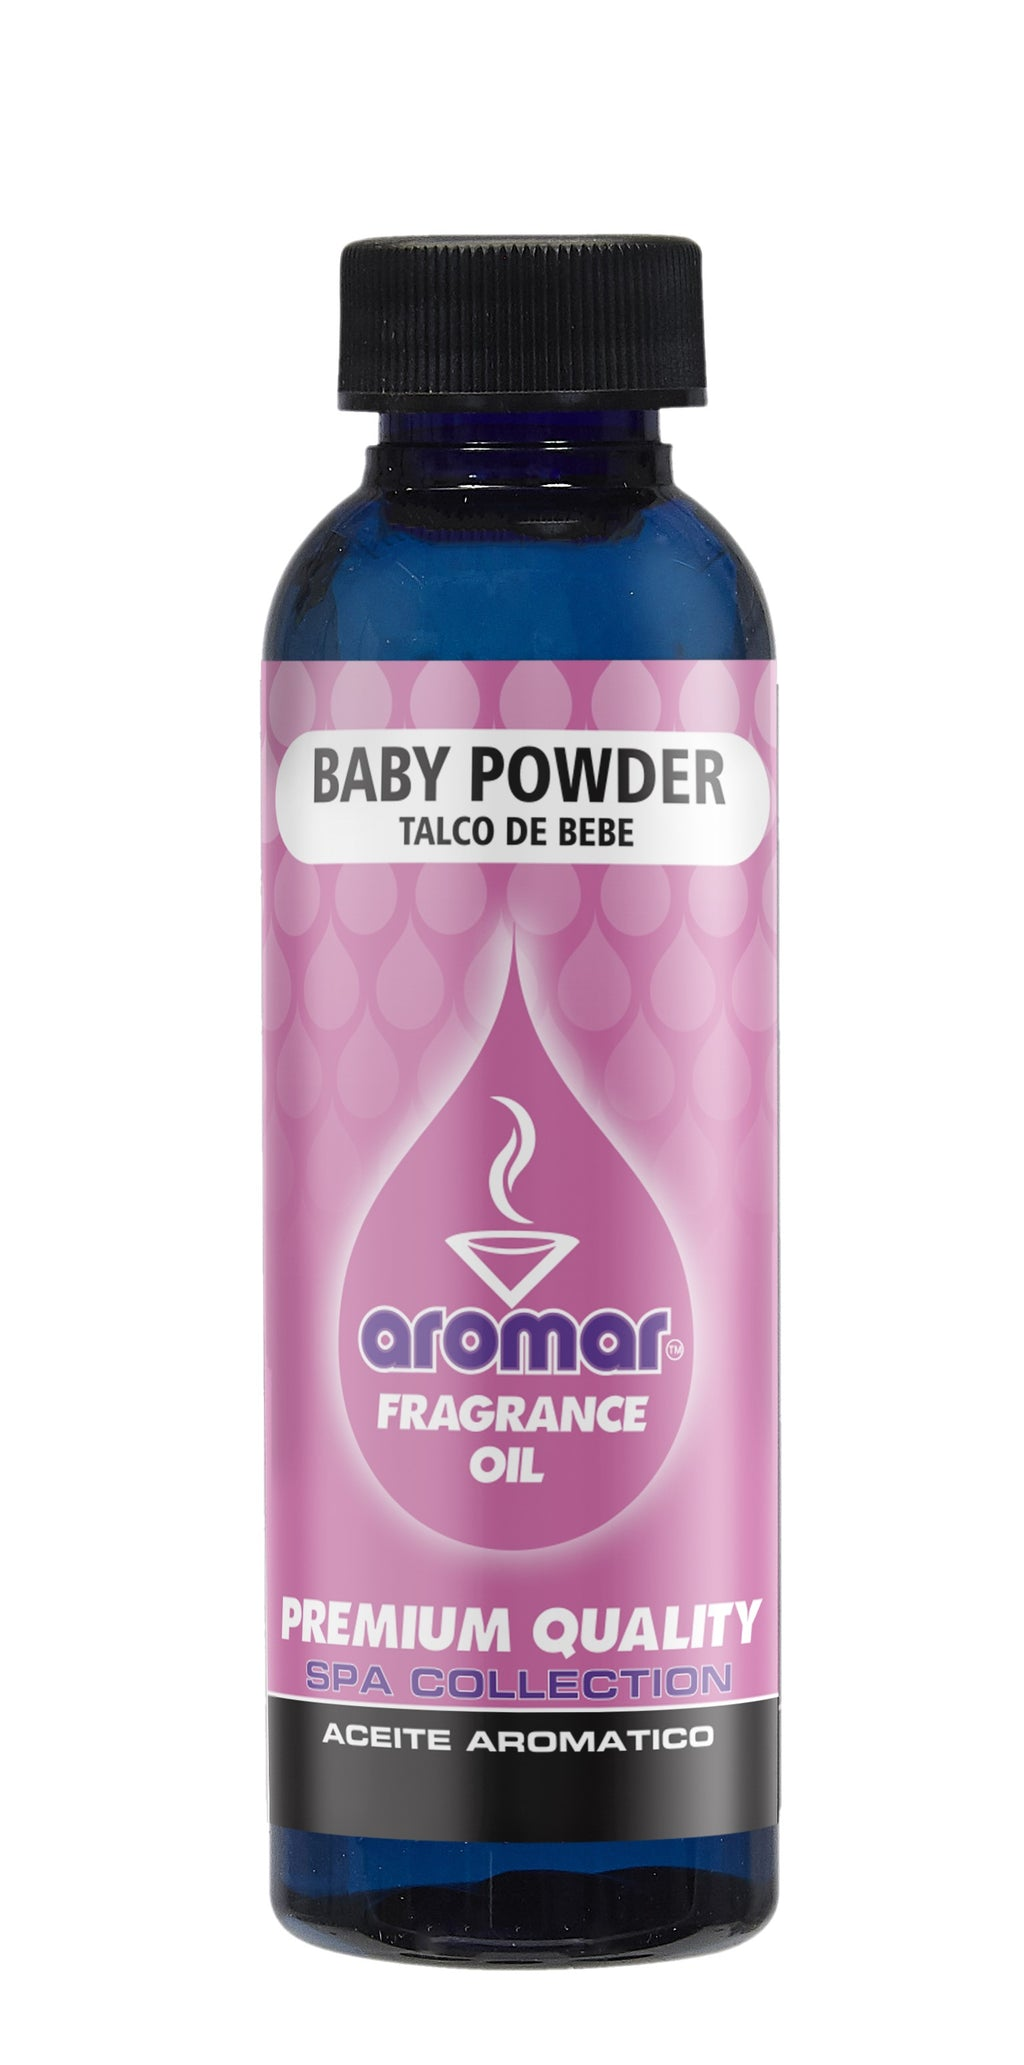 Baby Powder Aromatic Oil